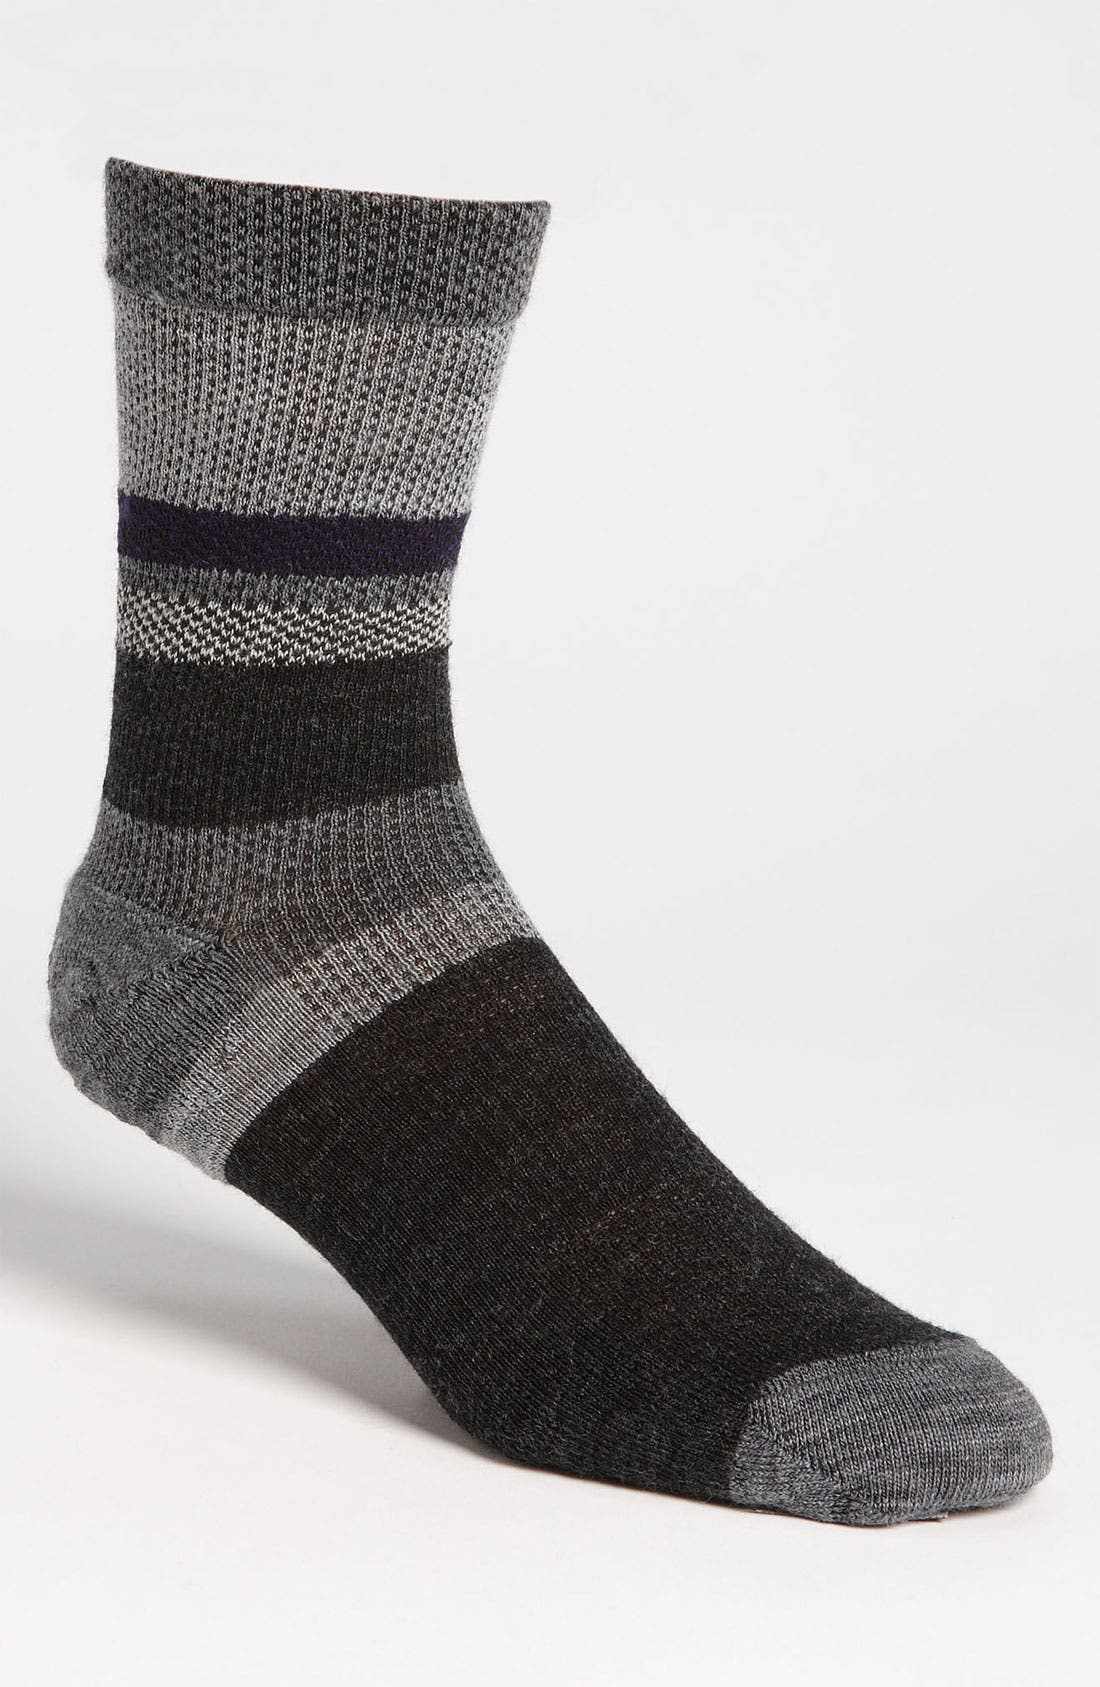 Alternate Image 1 Selected - Smartwool 'Distressed Stripe' Socks